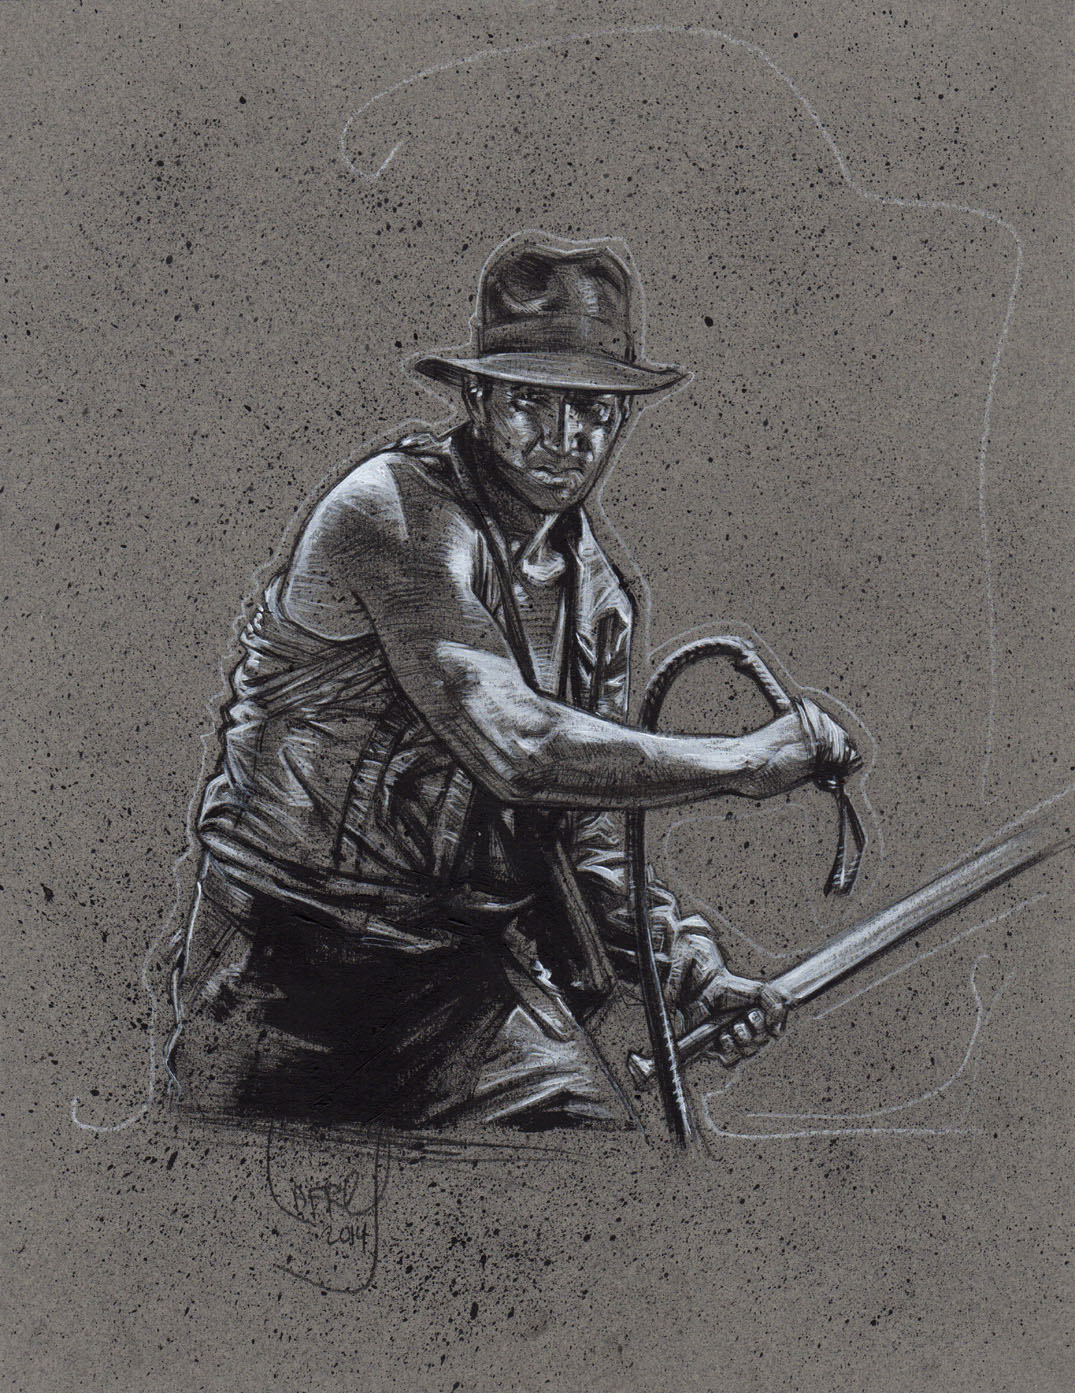 Indiana Jones Drawing, Artwork is Copyright © 2014 Jeff Lafferty